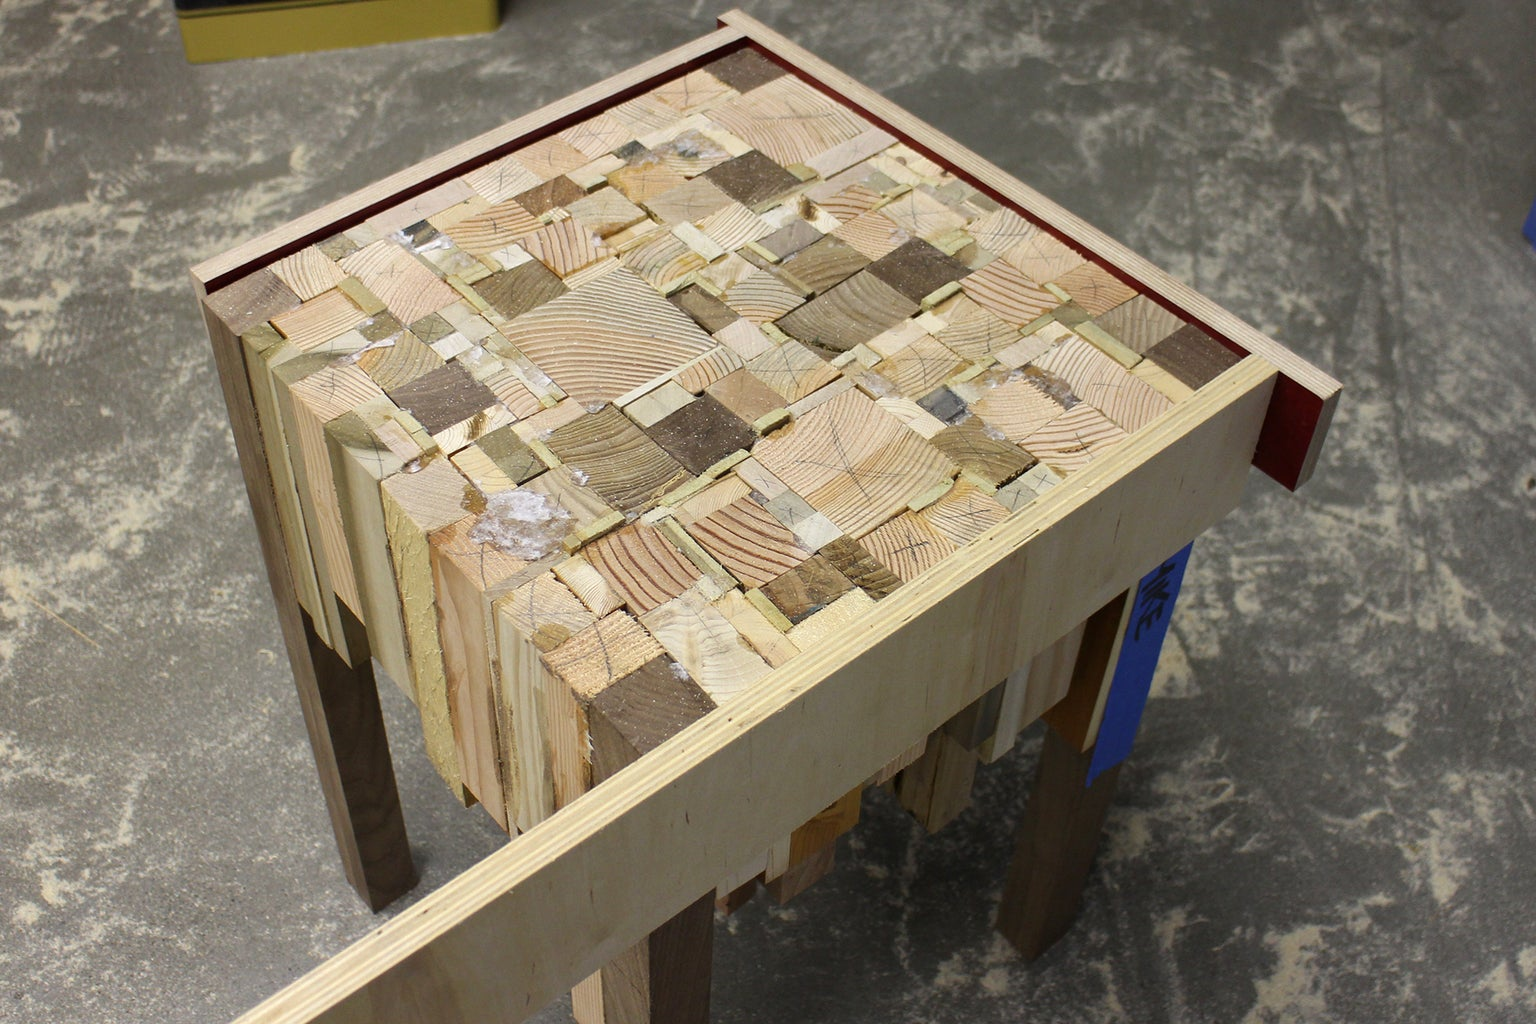 Router Top - Make Level Edging